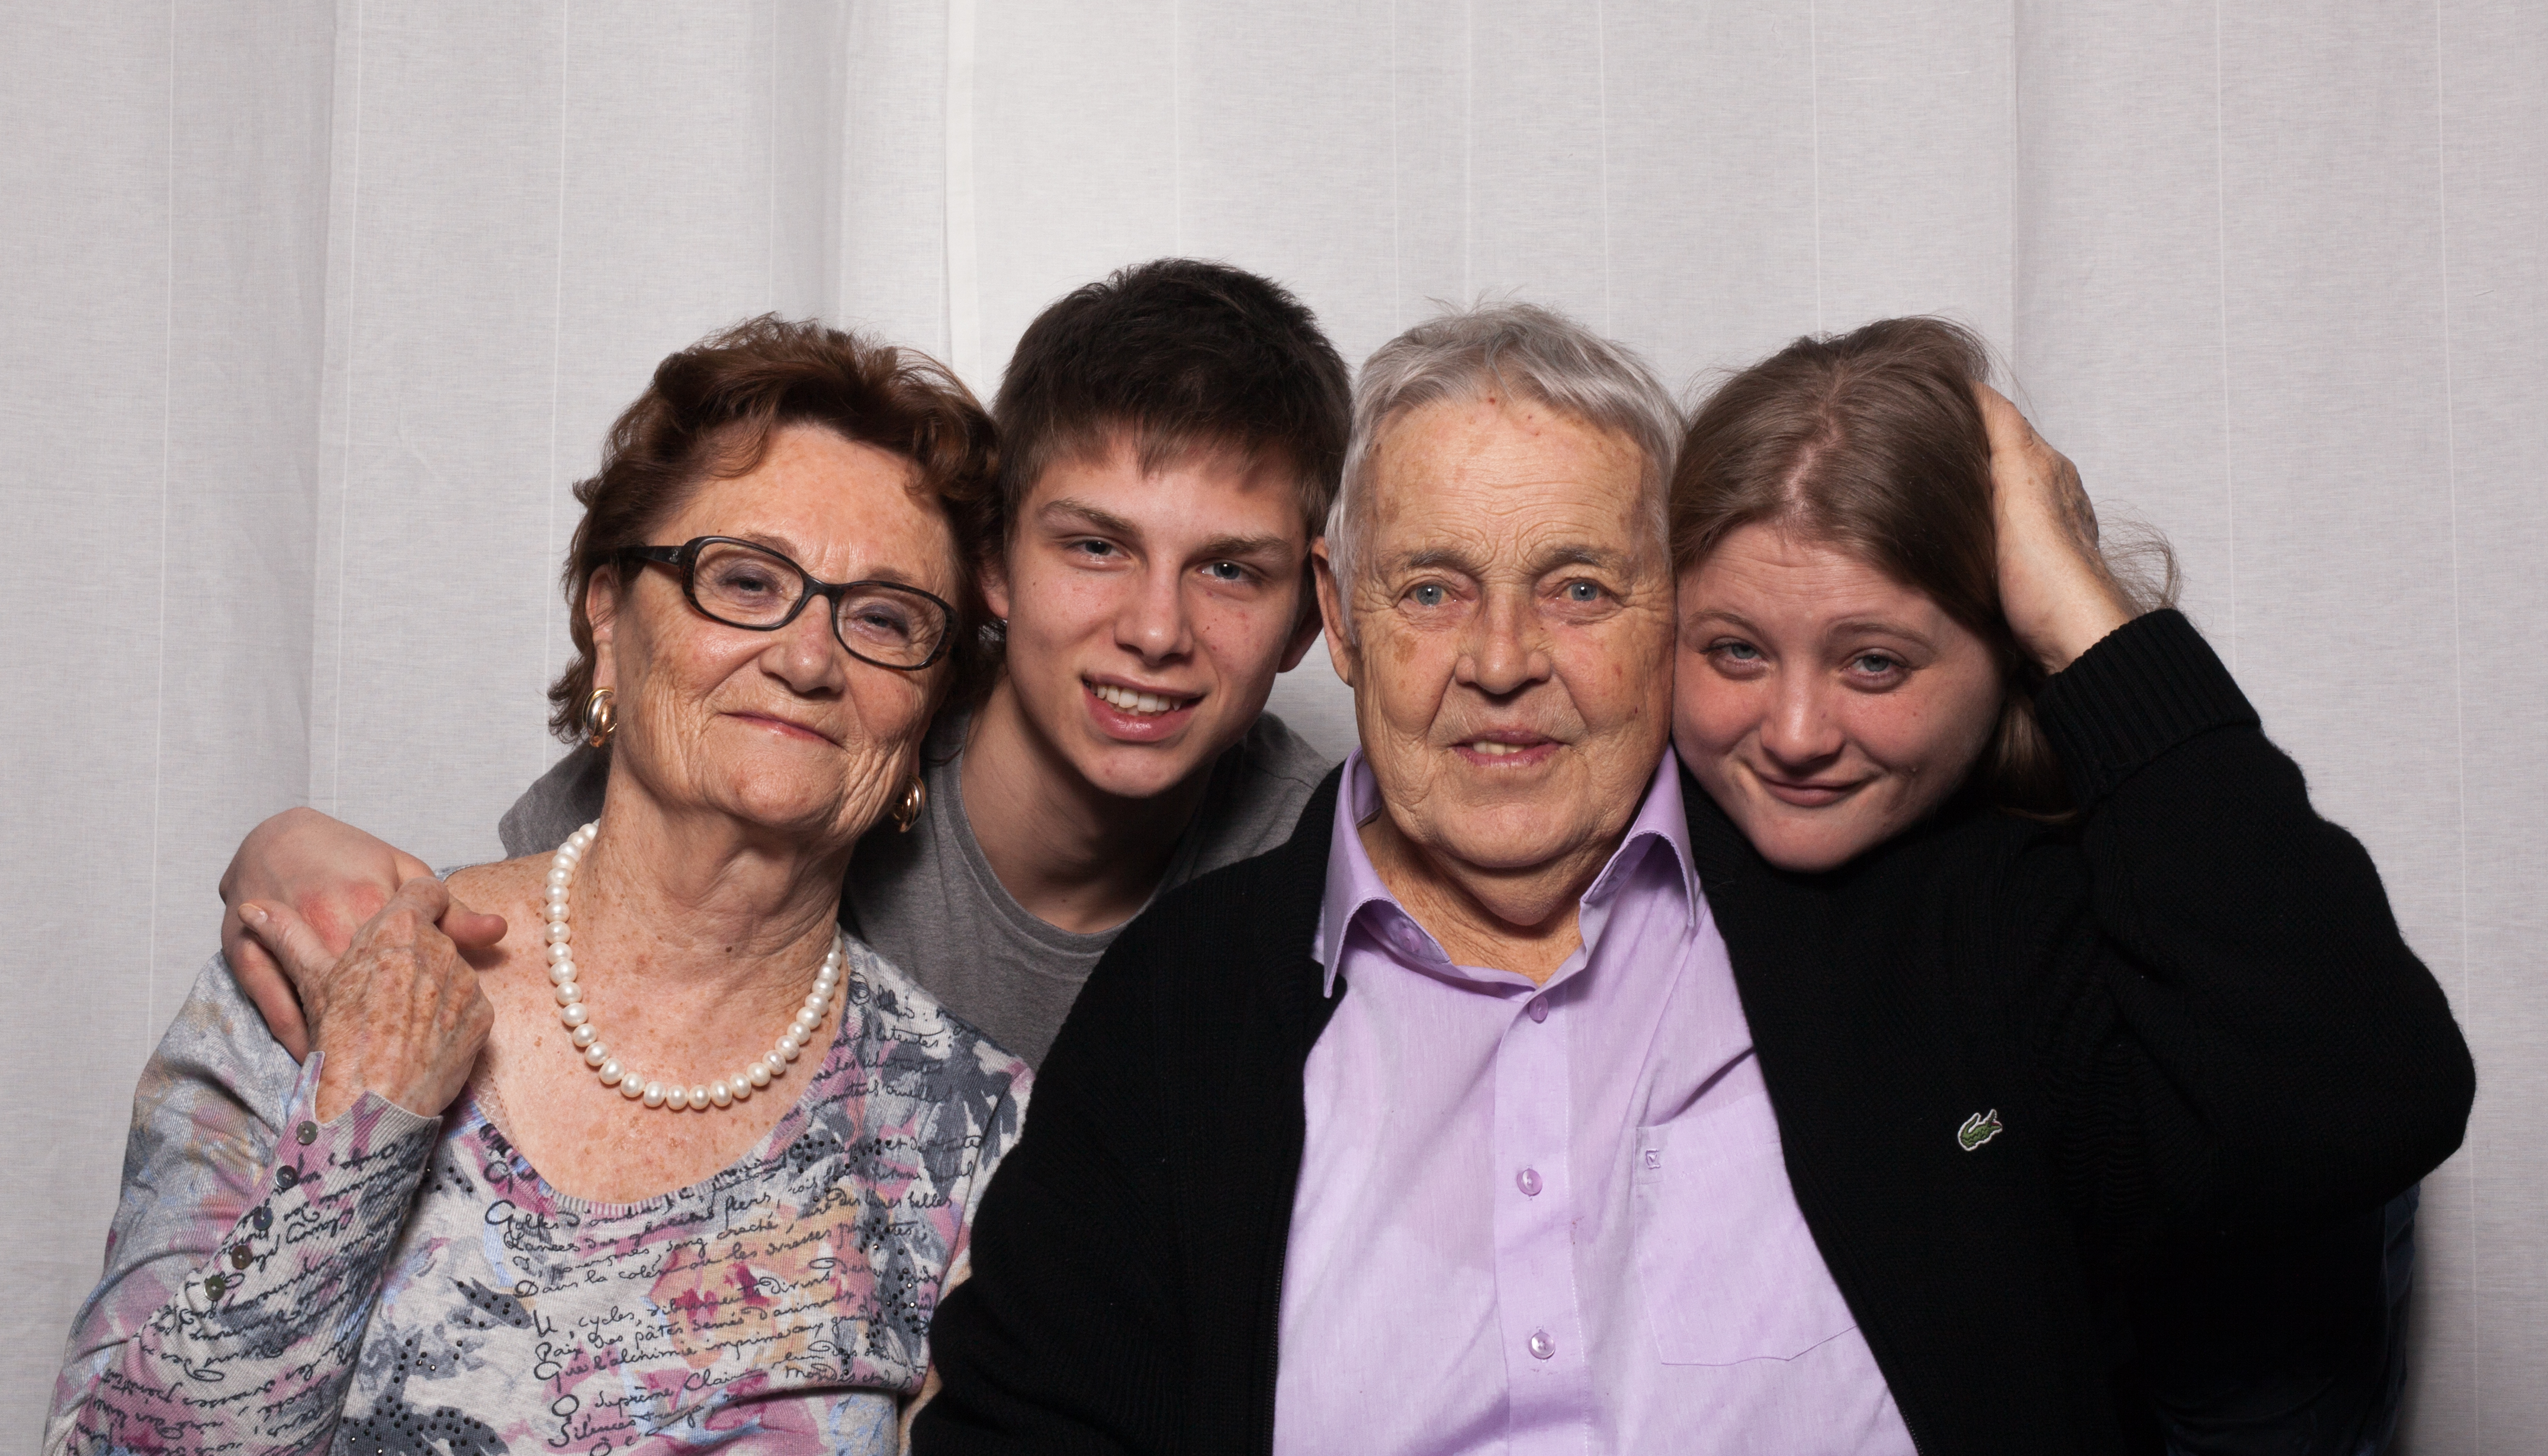 Famille 5